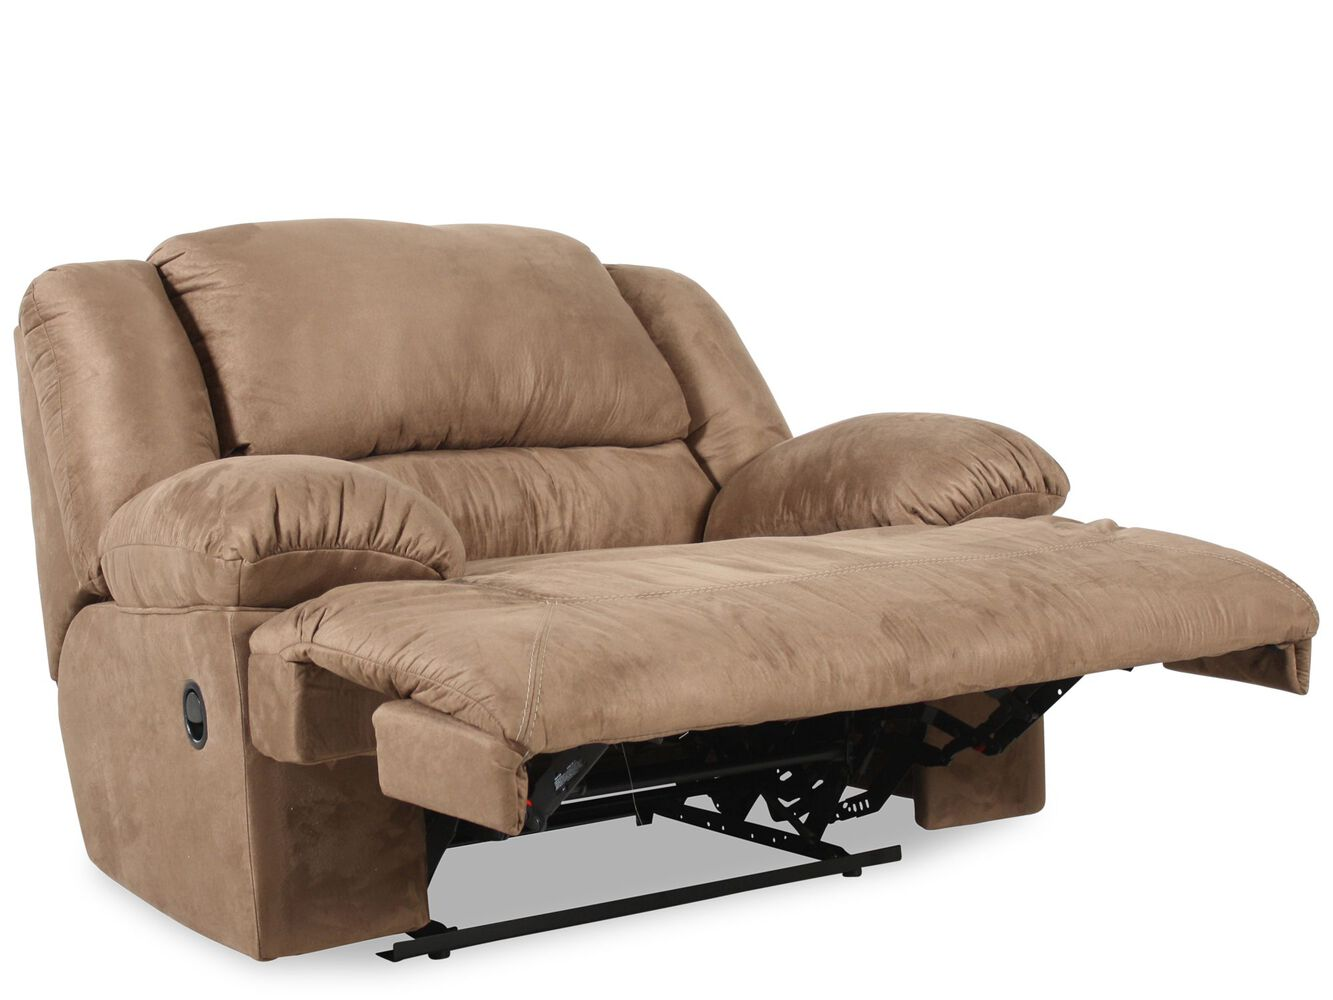 oversized contemporary microfiber 59 recliner in mocha mathis brothers furniture. Black Bedroom Furniture Sets. Home Design Ideas